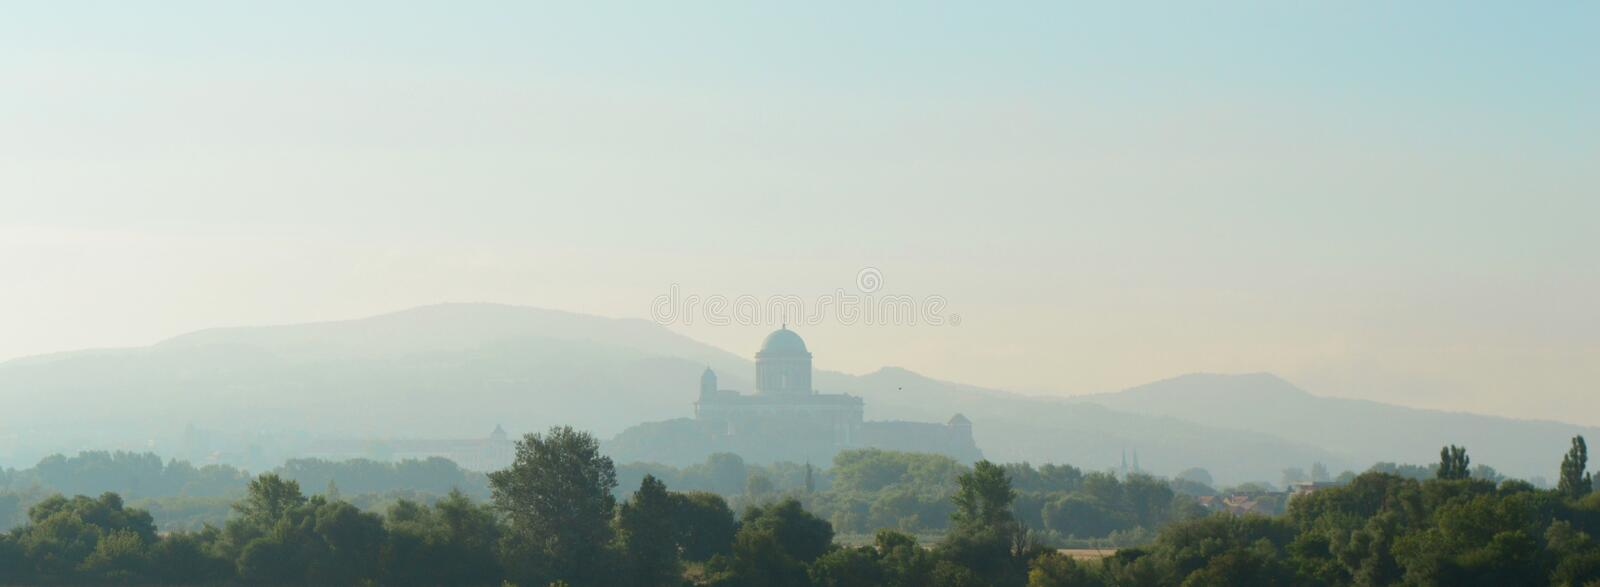 Panorama of sunrise over the church and hills royalty free stock photo